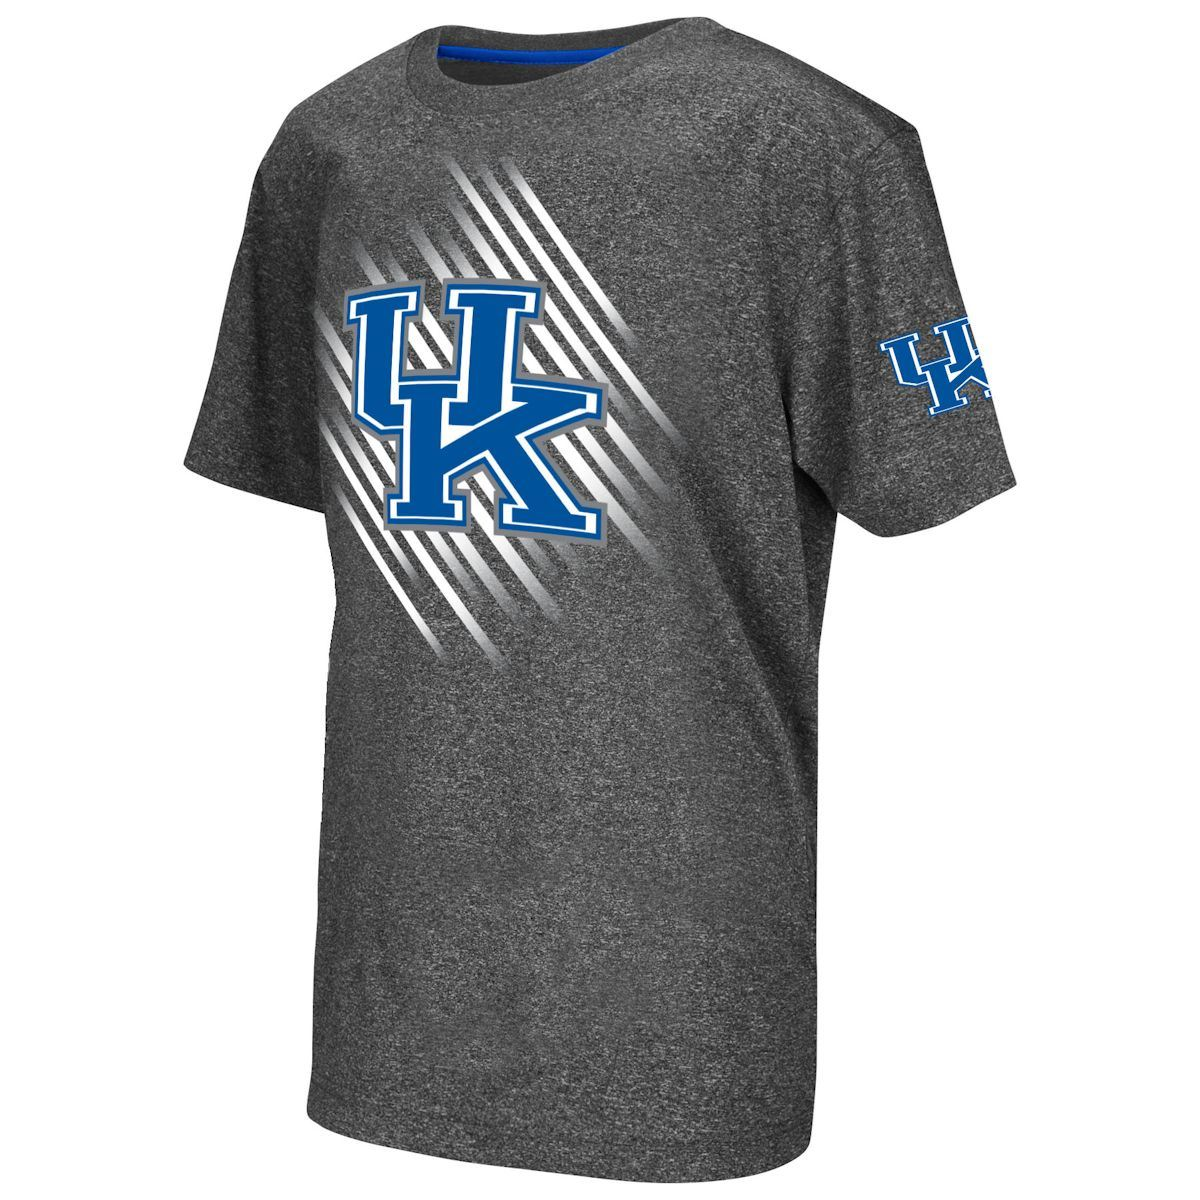 Kentucky Wildcats Position Youth Heather Charcoal T-Shirt